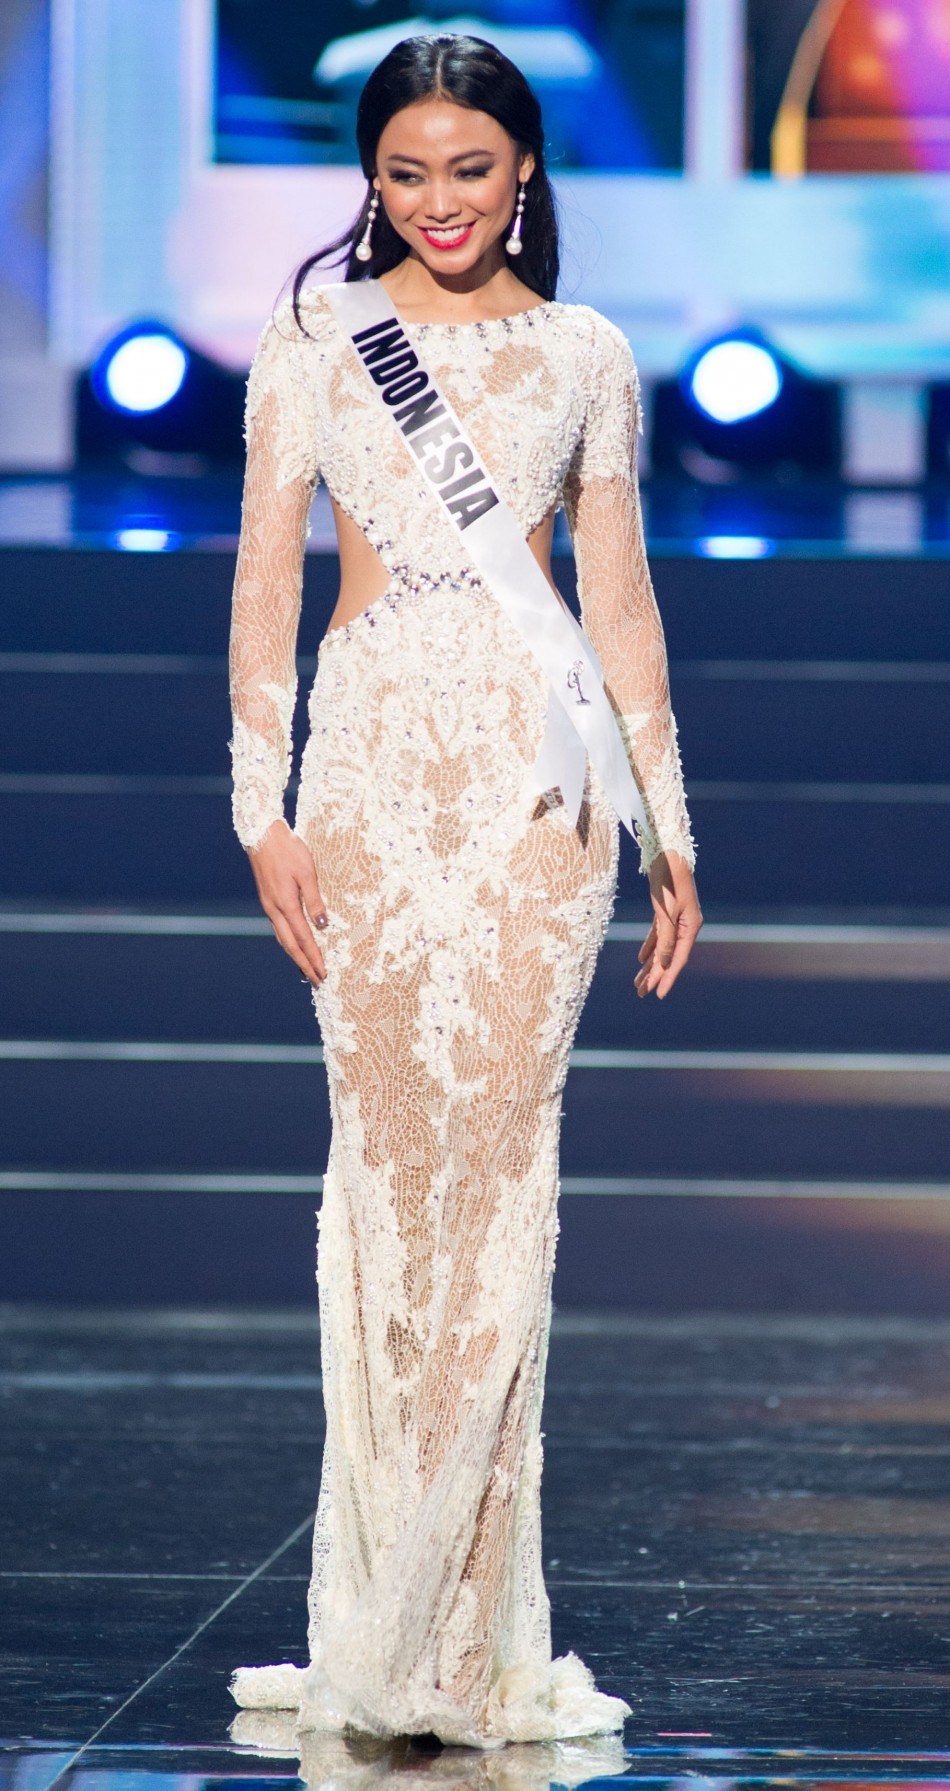 Whulandary, Miss Universe Indonesia 2013 (Photo: Miss Universe L.P., LLLP)